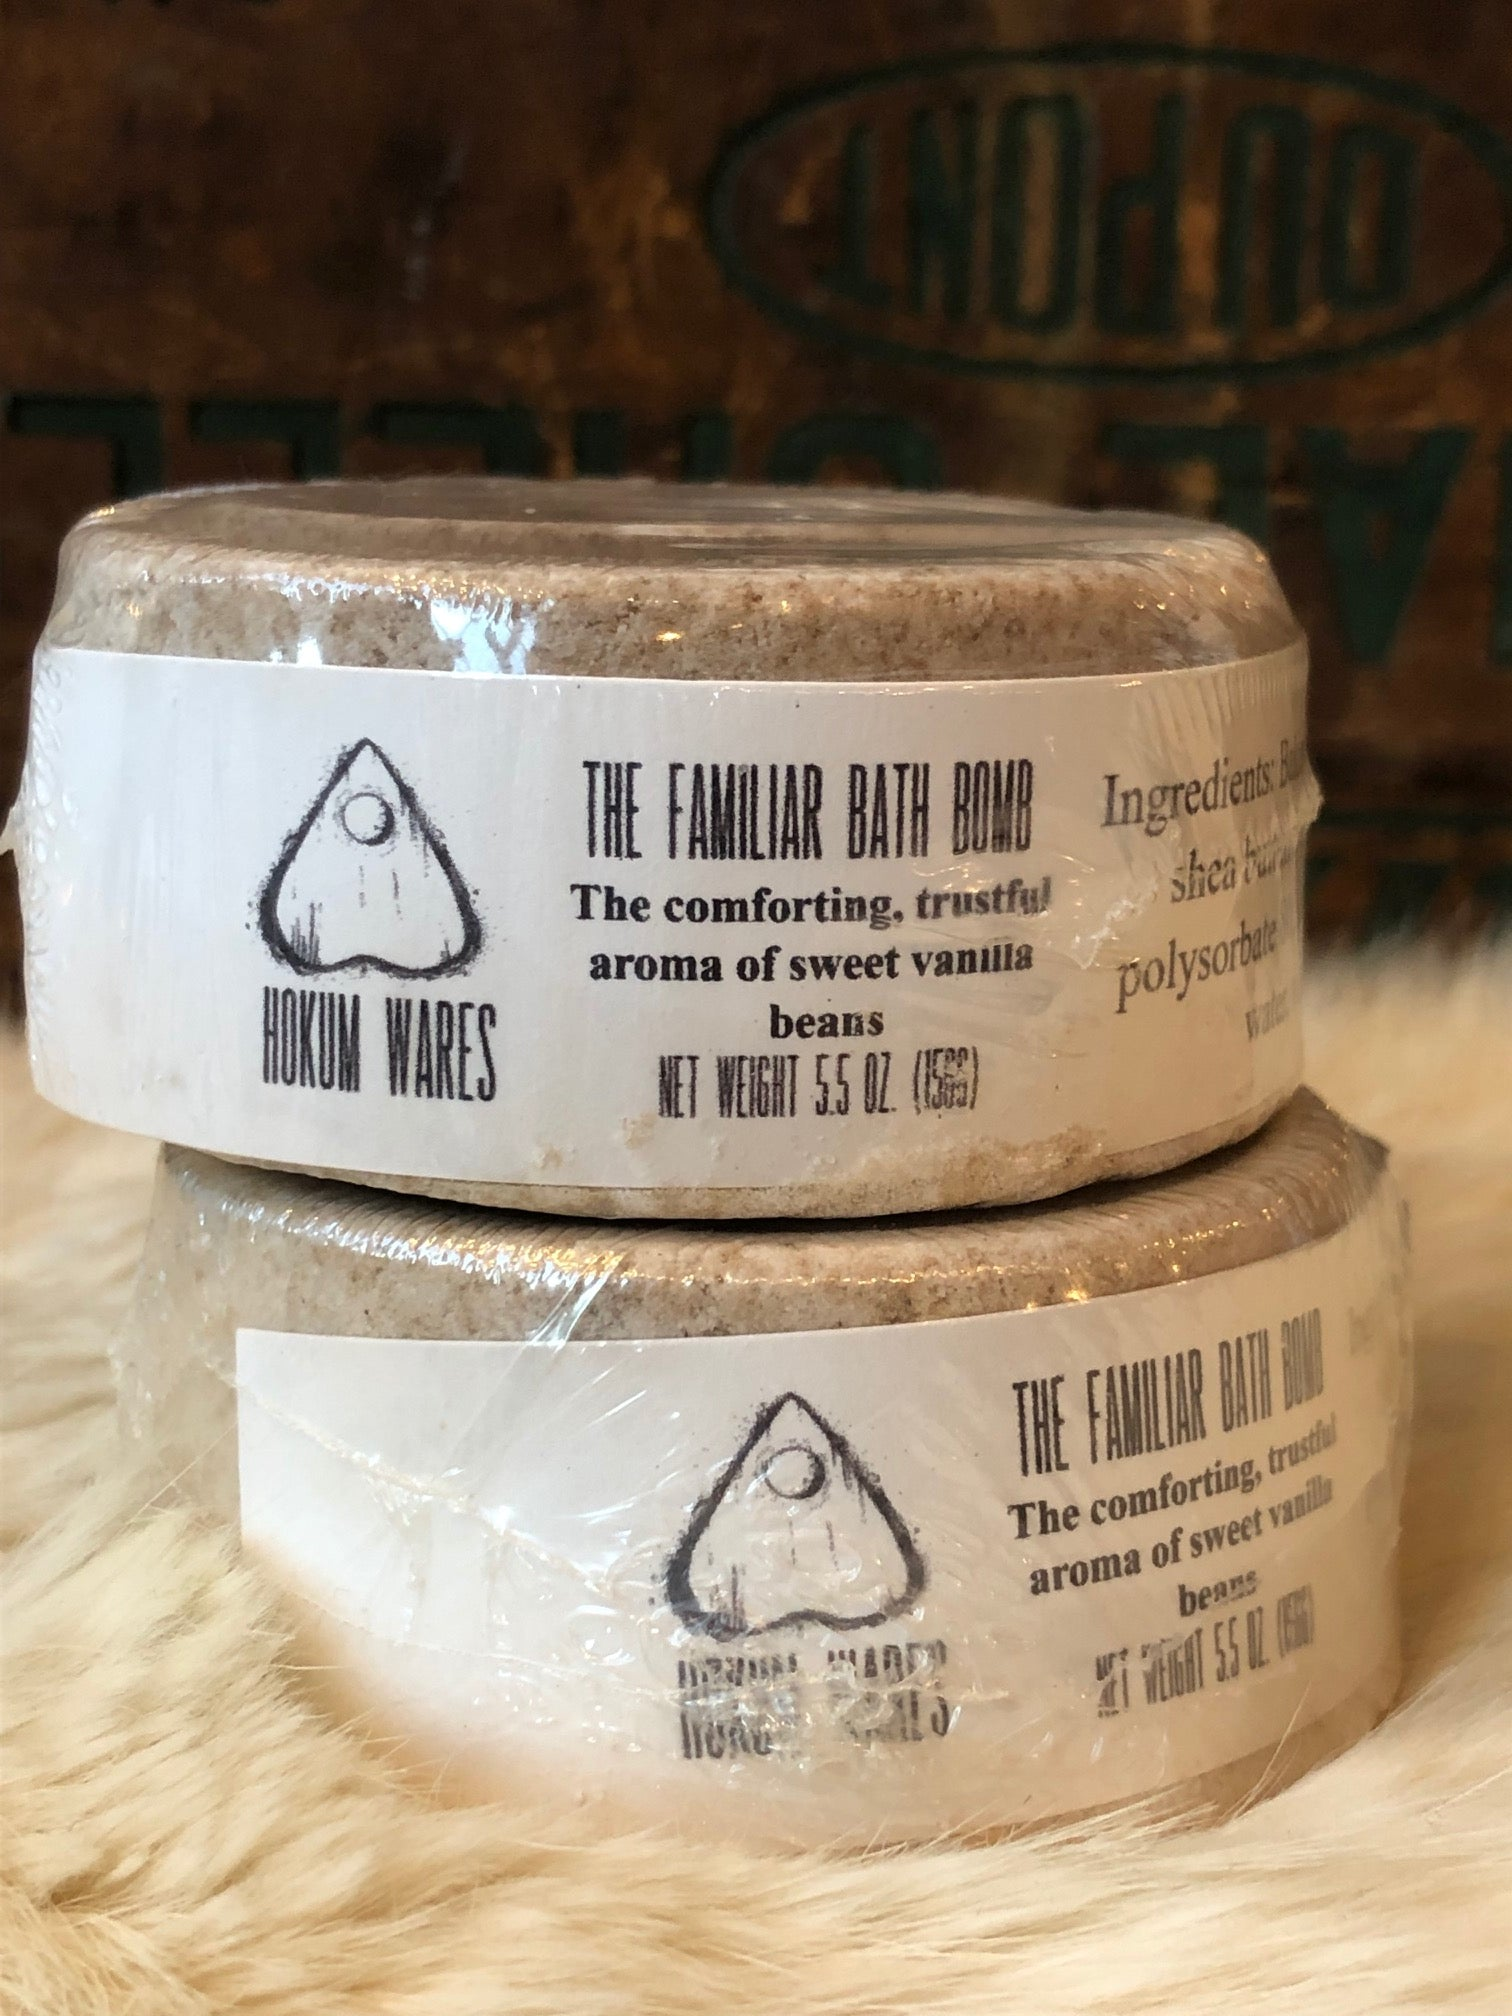 Hokum Wares Familiar Bath Bomb with Vanilla Bean